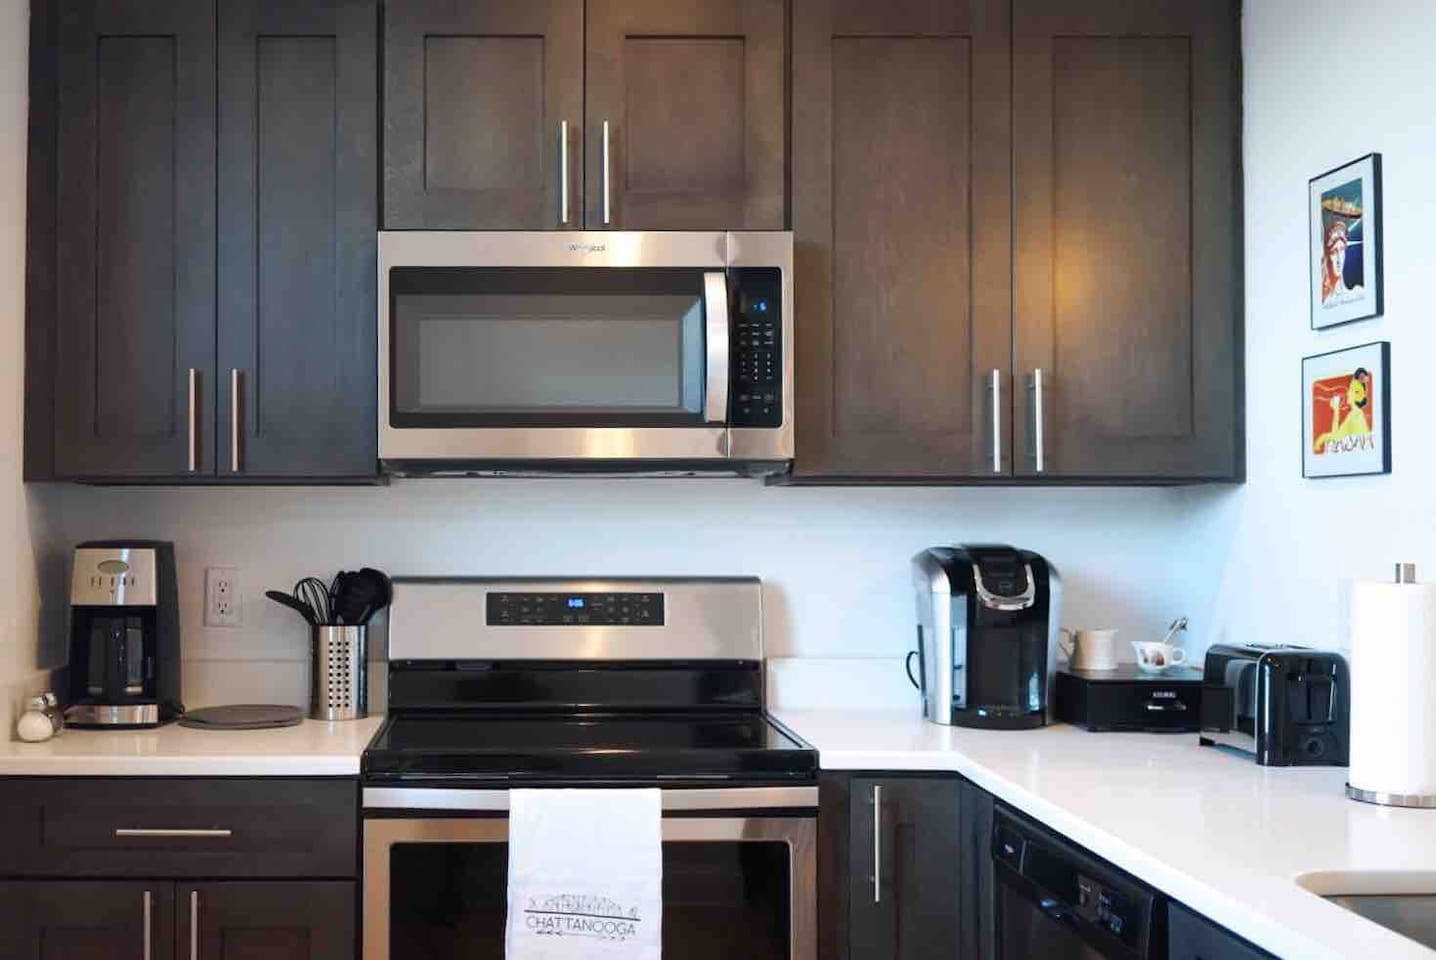 Stocked kitchen includes Pots & Pans, Cooking Utensils, Keurig + K Cups & Coffee Maker, Toaster, Blender and much more.